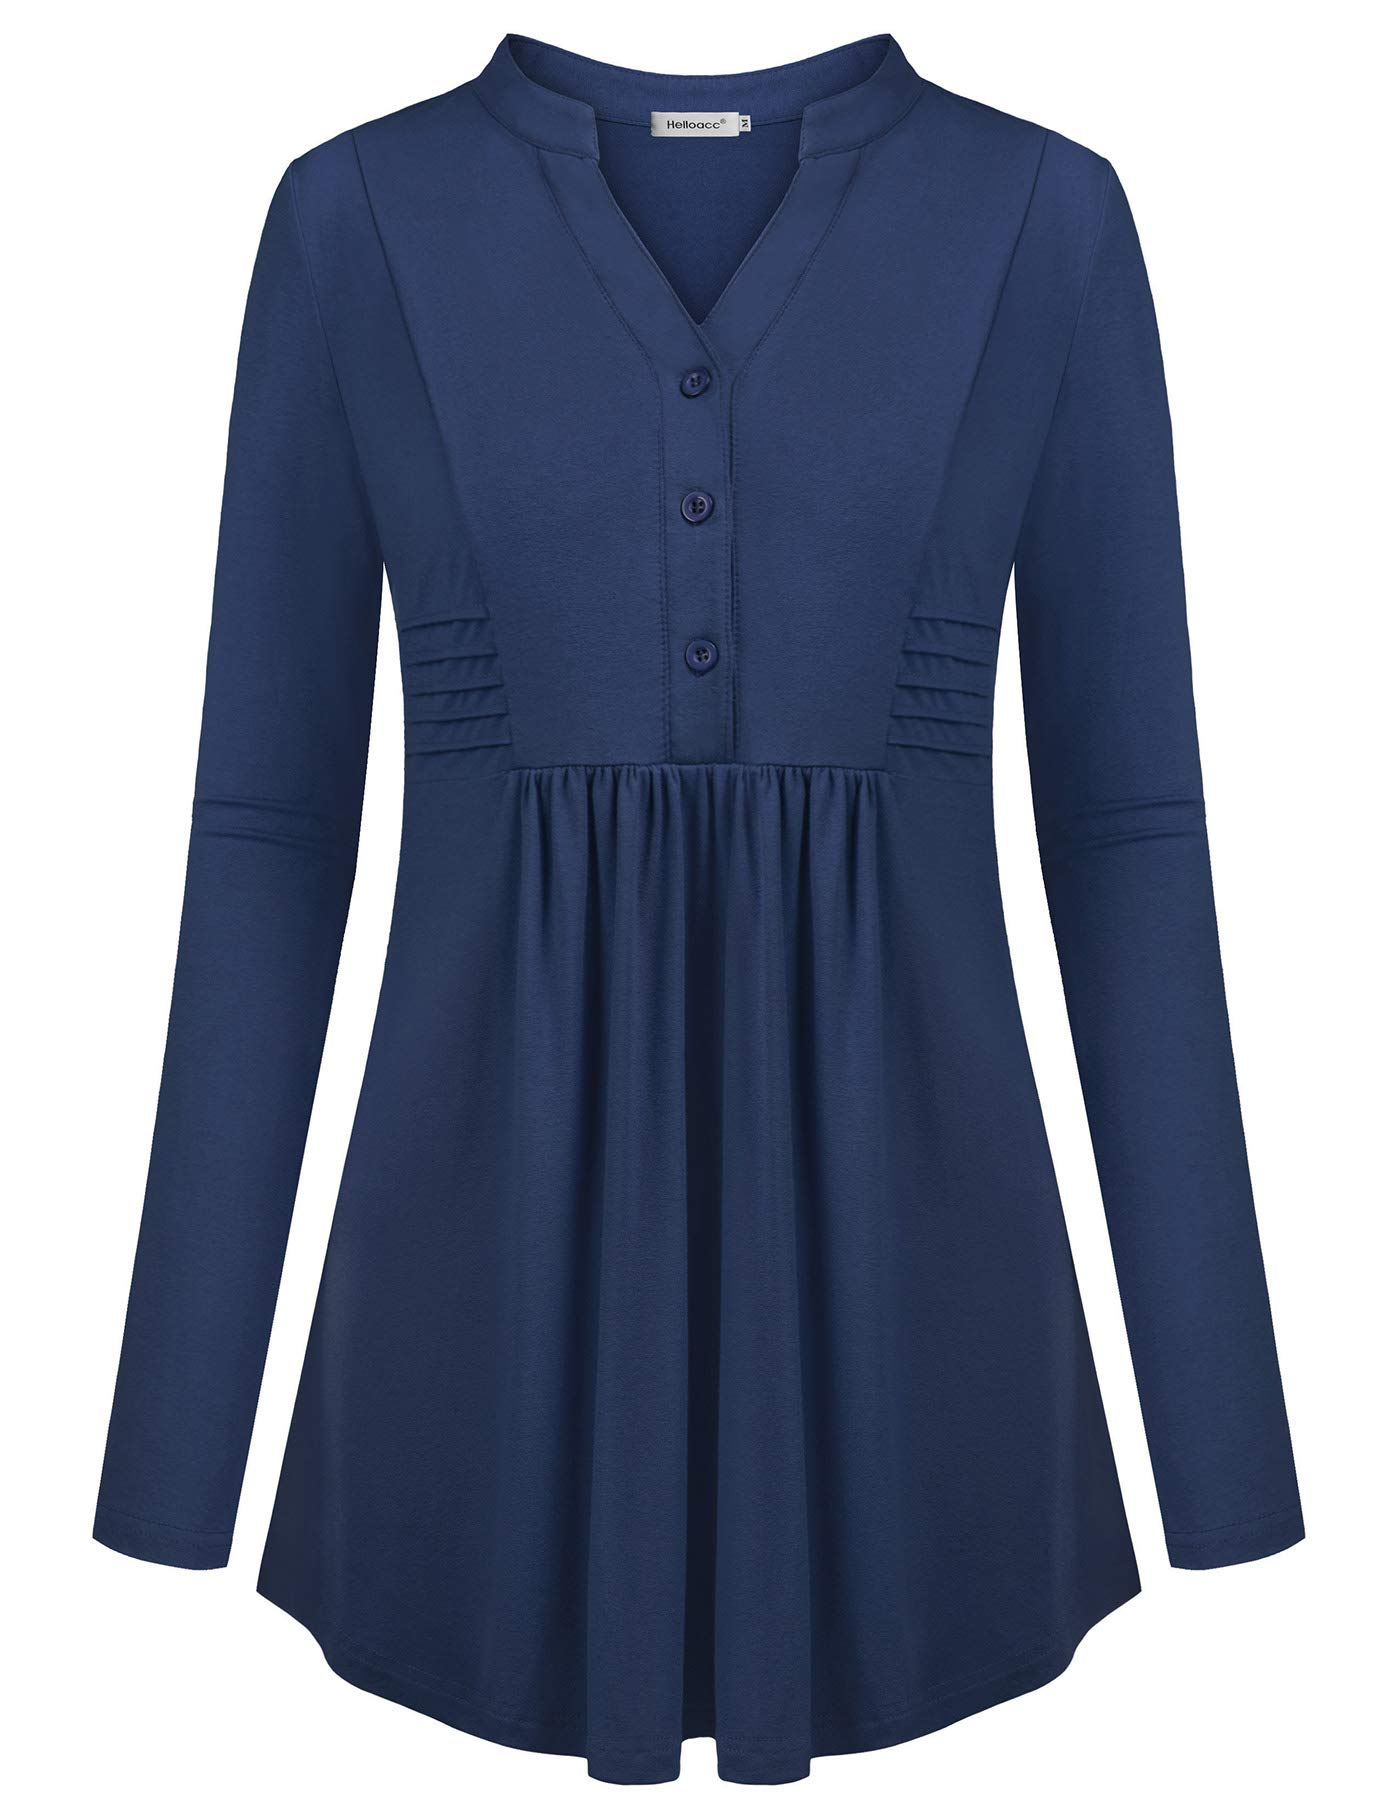 Helloacc Aline Tunic Tops for Women,Long Shirts for Plus Women Fitted Loose Tees Cowl Office Lady Suit V-Neck Ruched Slimming T-Shirt Business Casual Blouses Cutout Latest Fashion Oversized Blue 2X